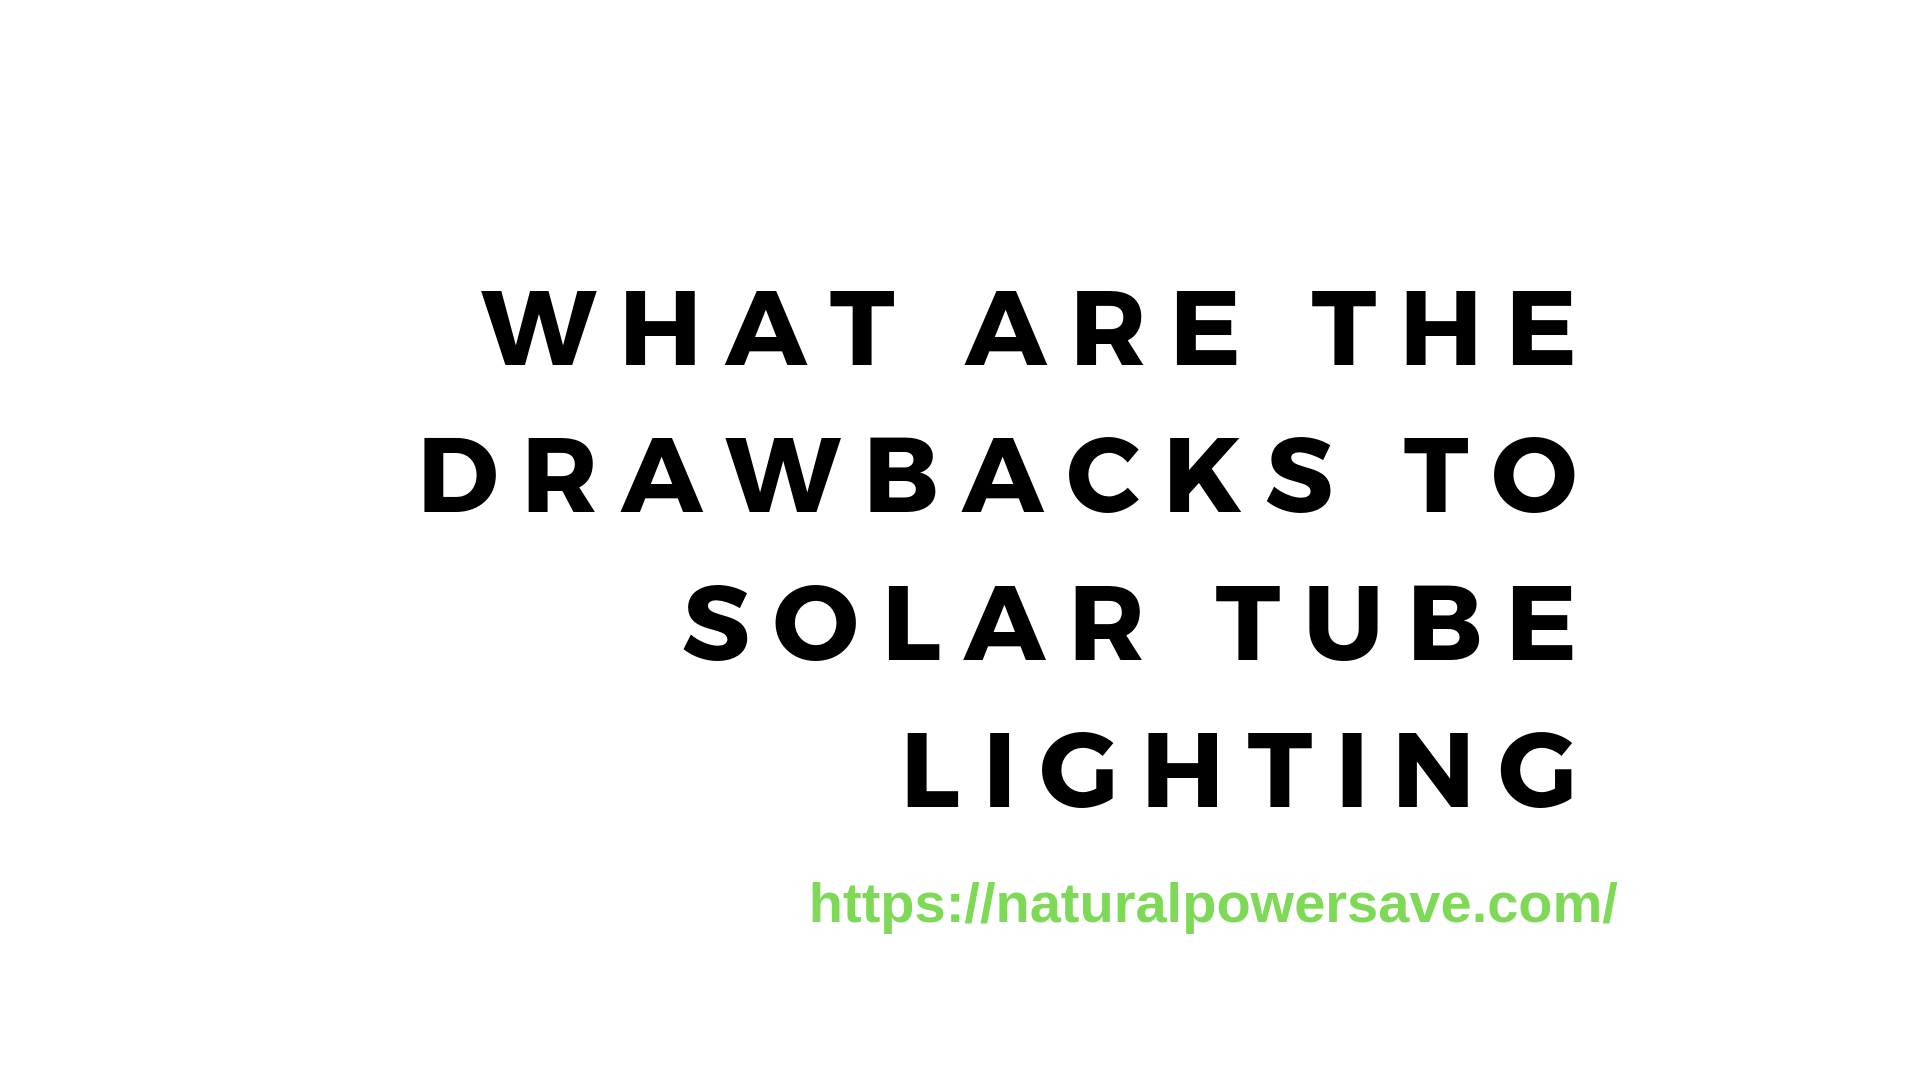 What Are the Drawbacks to Solar Tube Lighting?